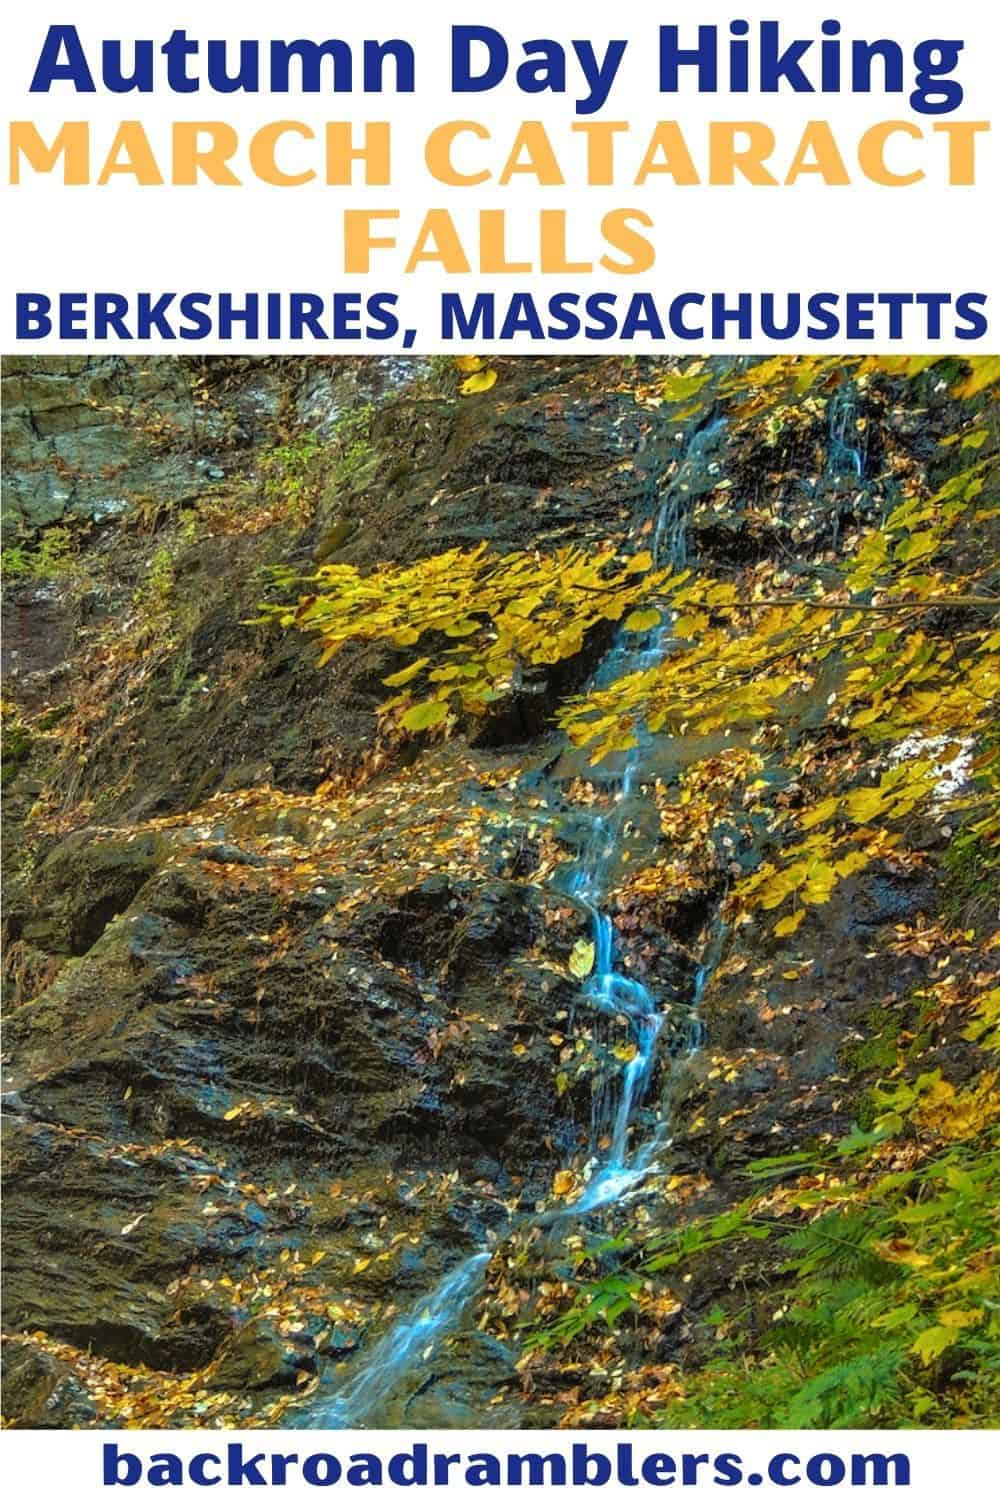 A fall view of March Cataract Falls in Massachusetts. Text overlay: Autumn Day Hiking - March Cataract Falls in the Berkshires of Massachusetts.